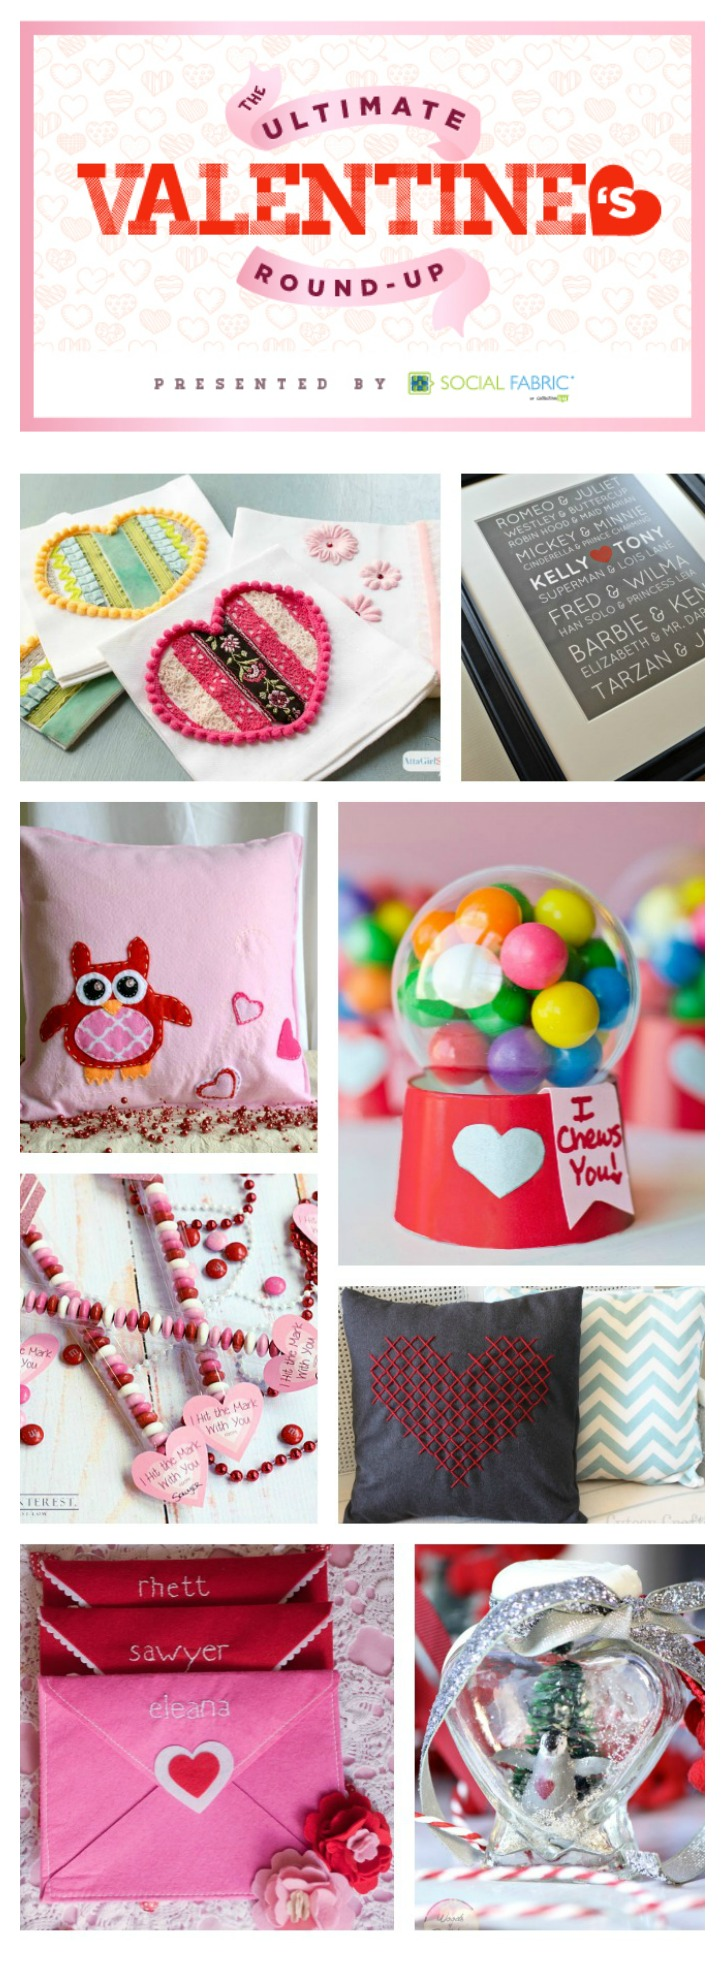 MUST PIN resource for the Ultimate Valentine's Round-Up! There's home decor, Valentine crafts, Valentine's Day wreaths, and romantic desserts to inspire your Valentine's Day!